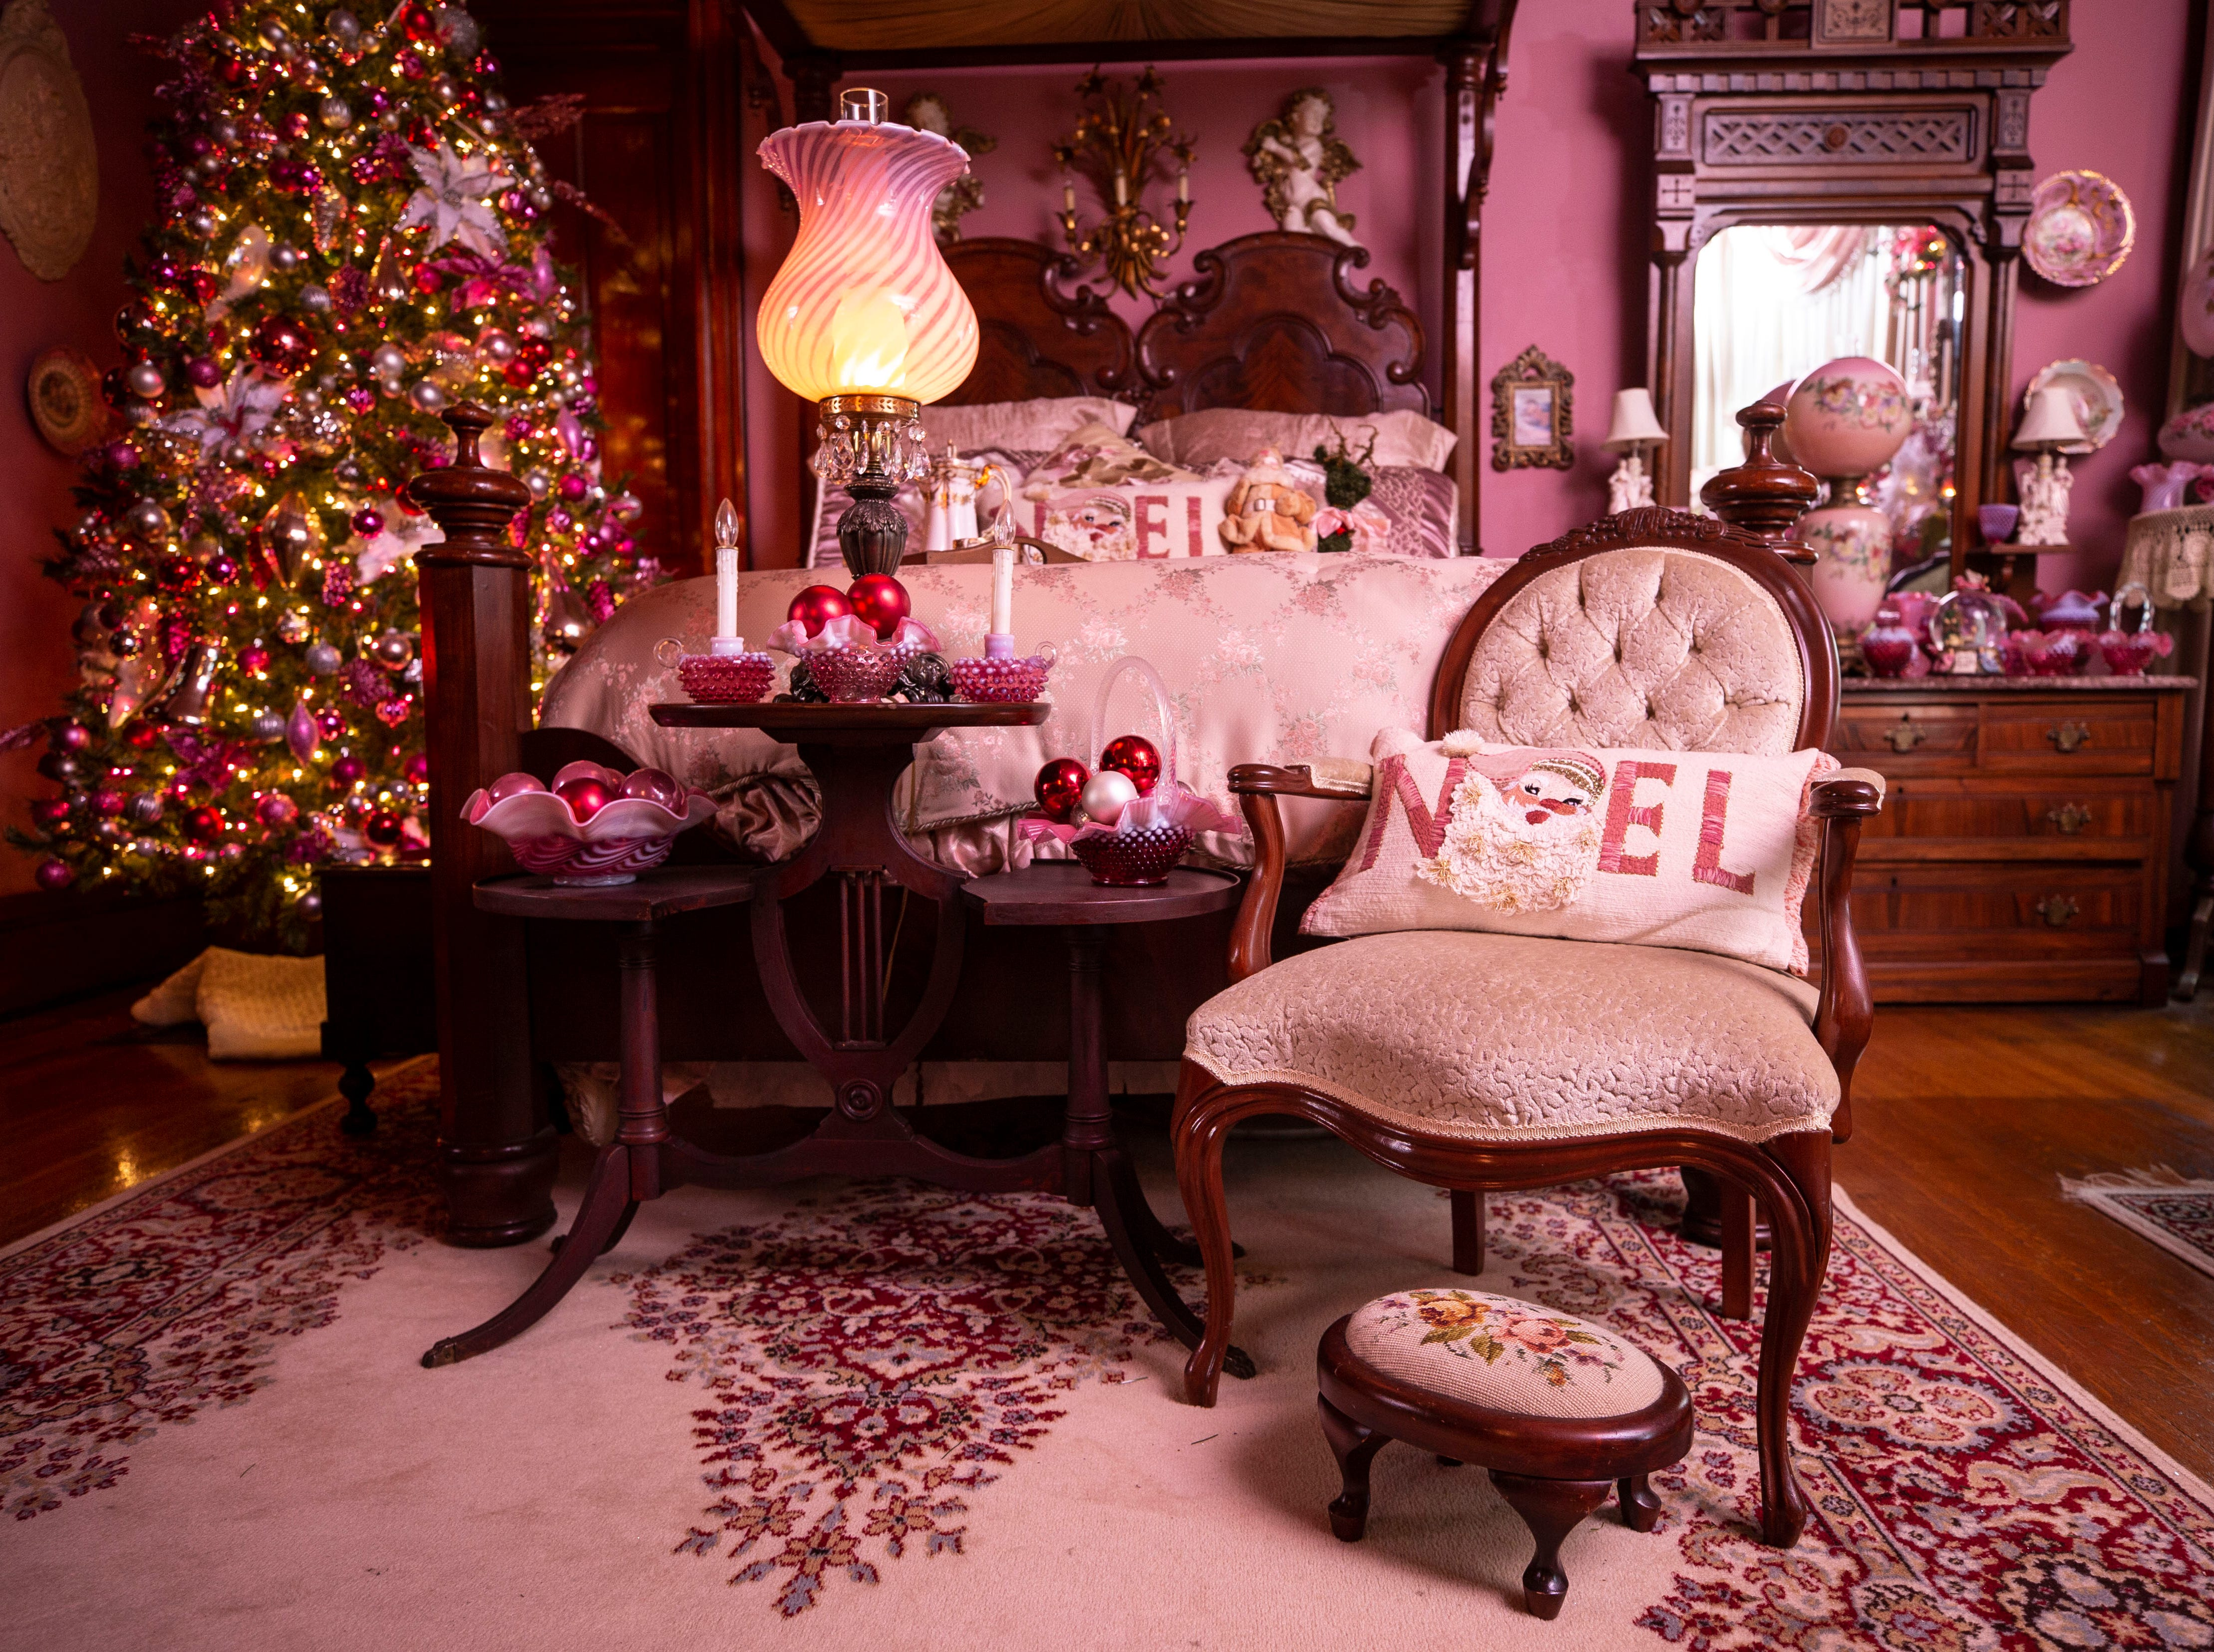 David Brown bought this 6,000-square foot Old Louisville home needing extensive repairs and renovations. Now, the Victorian-era, three-story home is filled with Christmas and Holiday lights, trees and ornaments that is part of the Old Louisville Holiday Home Tour.